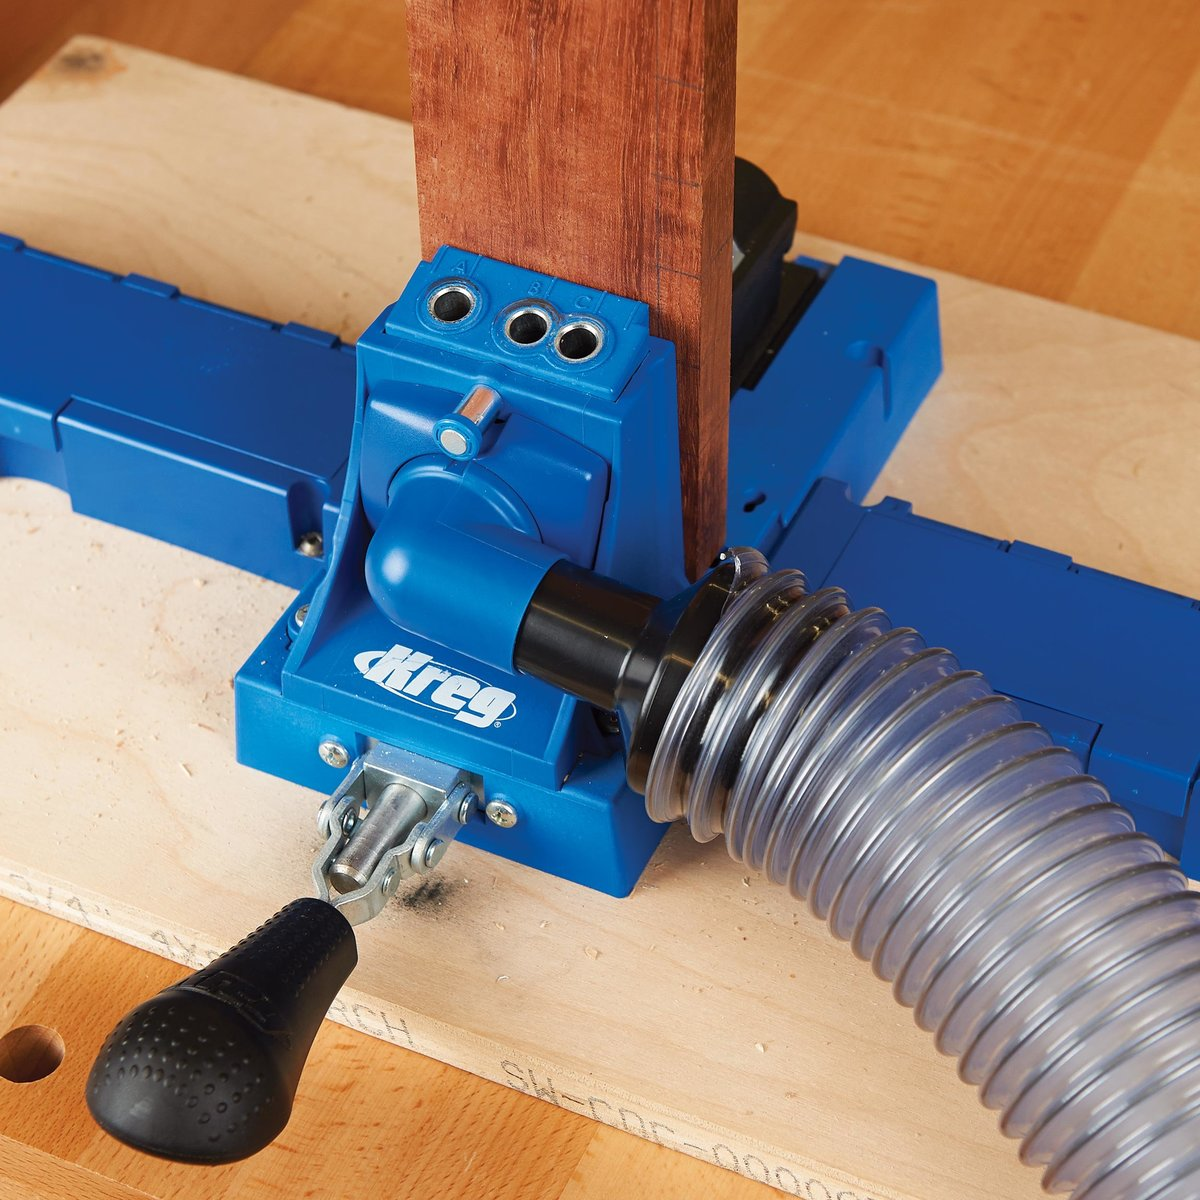 Power Tool Parts & Accessories Tools & Home Improvement Dust ...